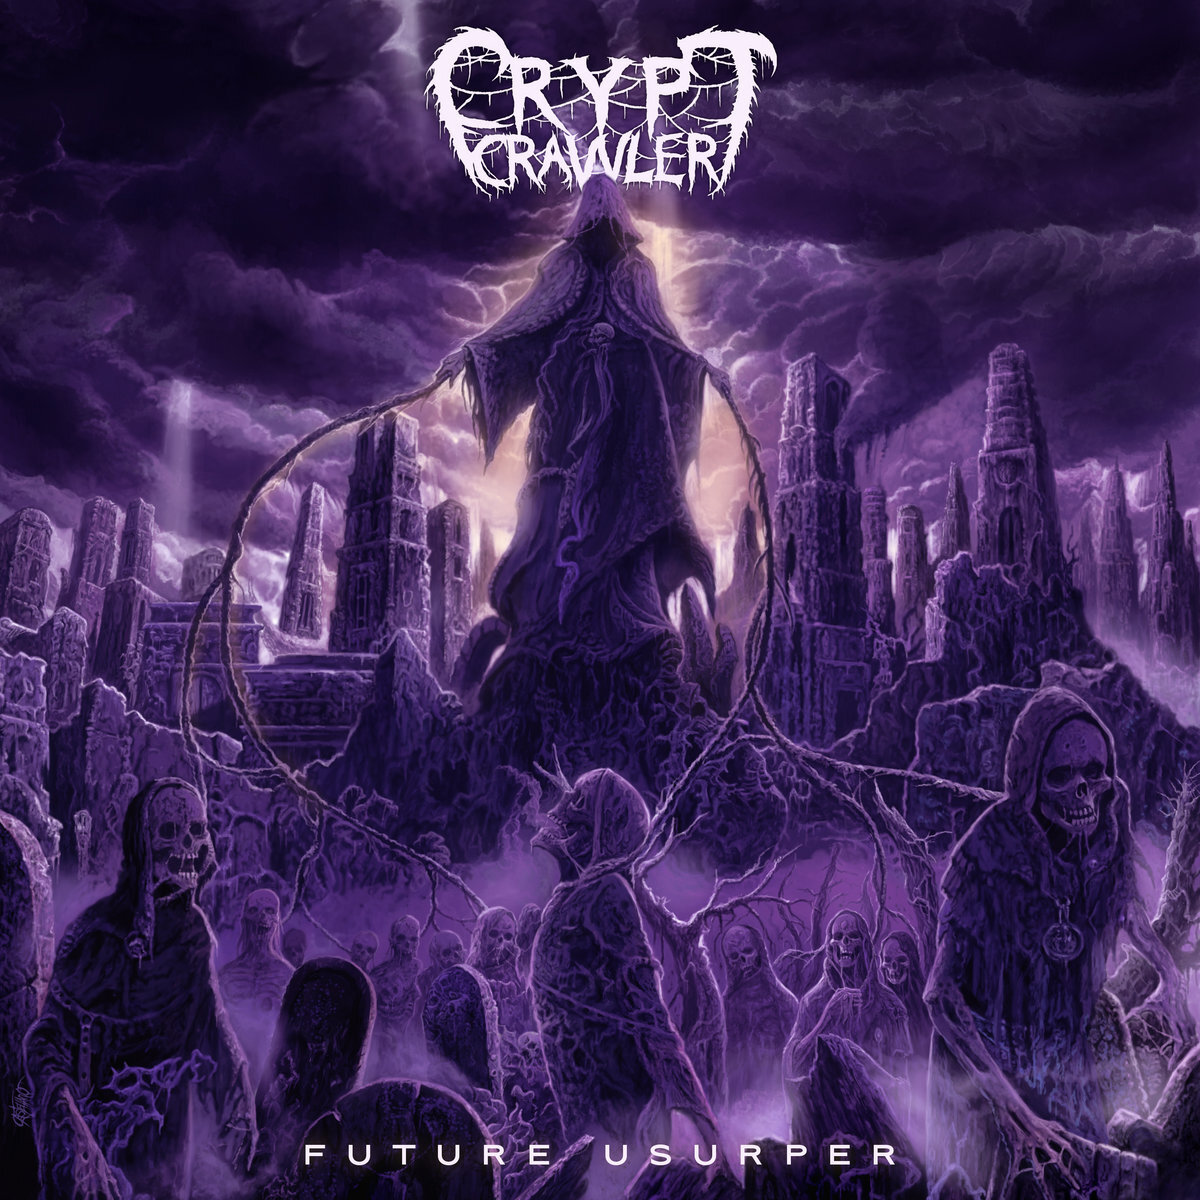 New Metal Releases - May 28th 2021